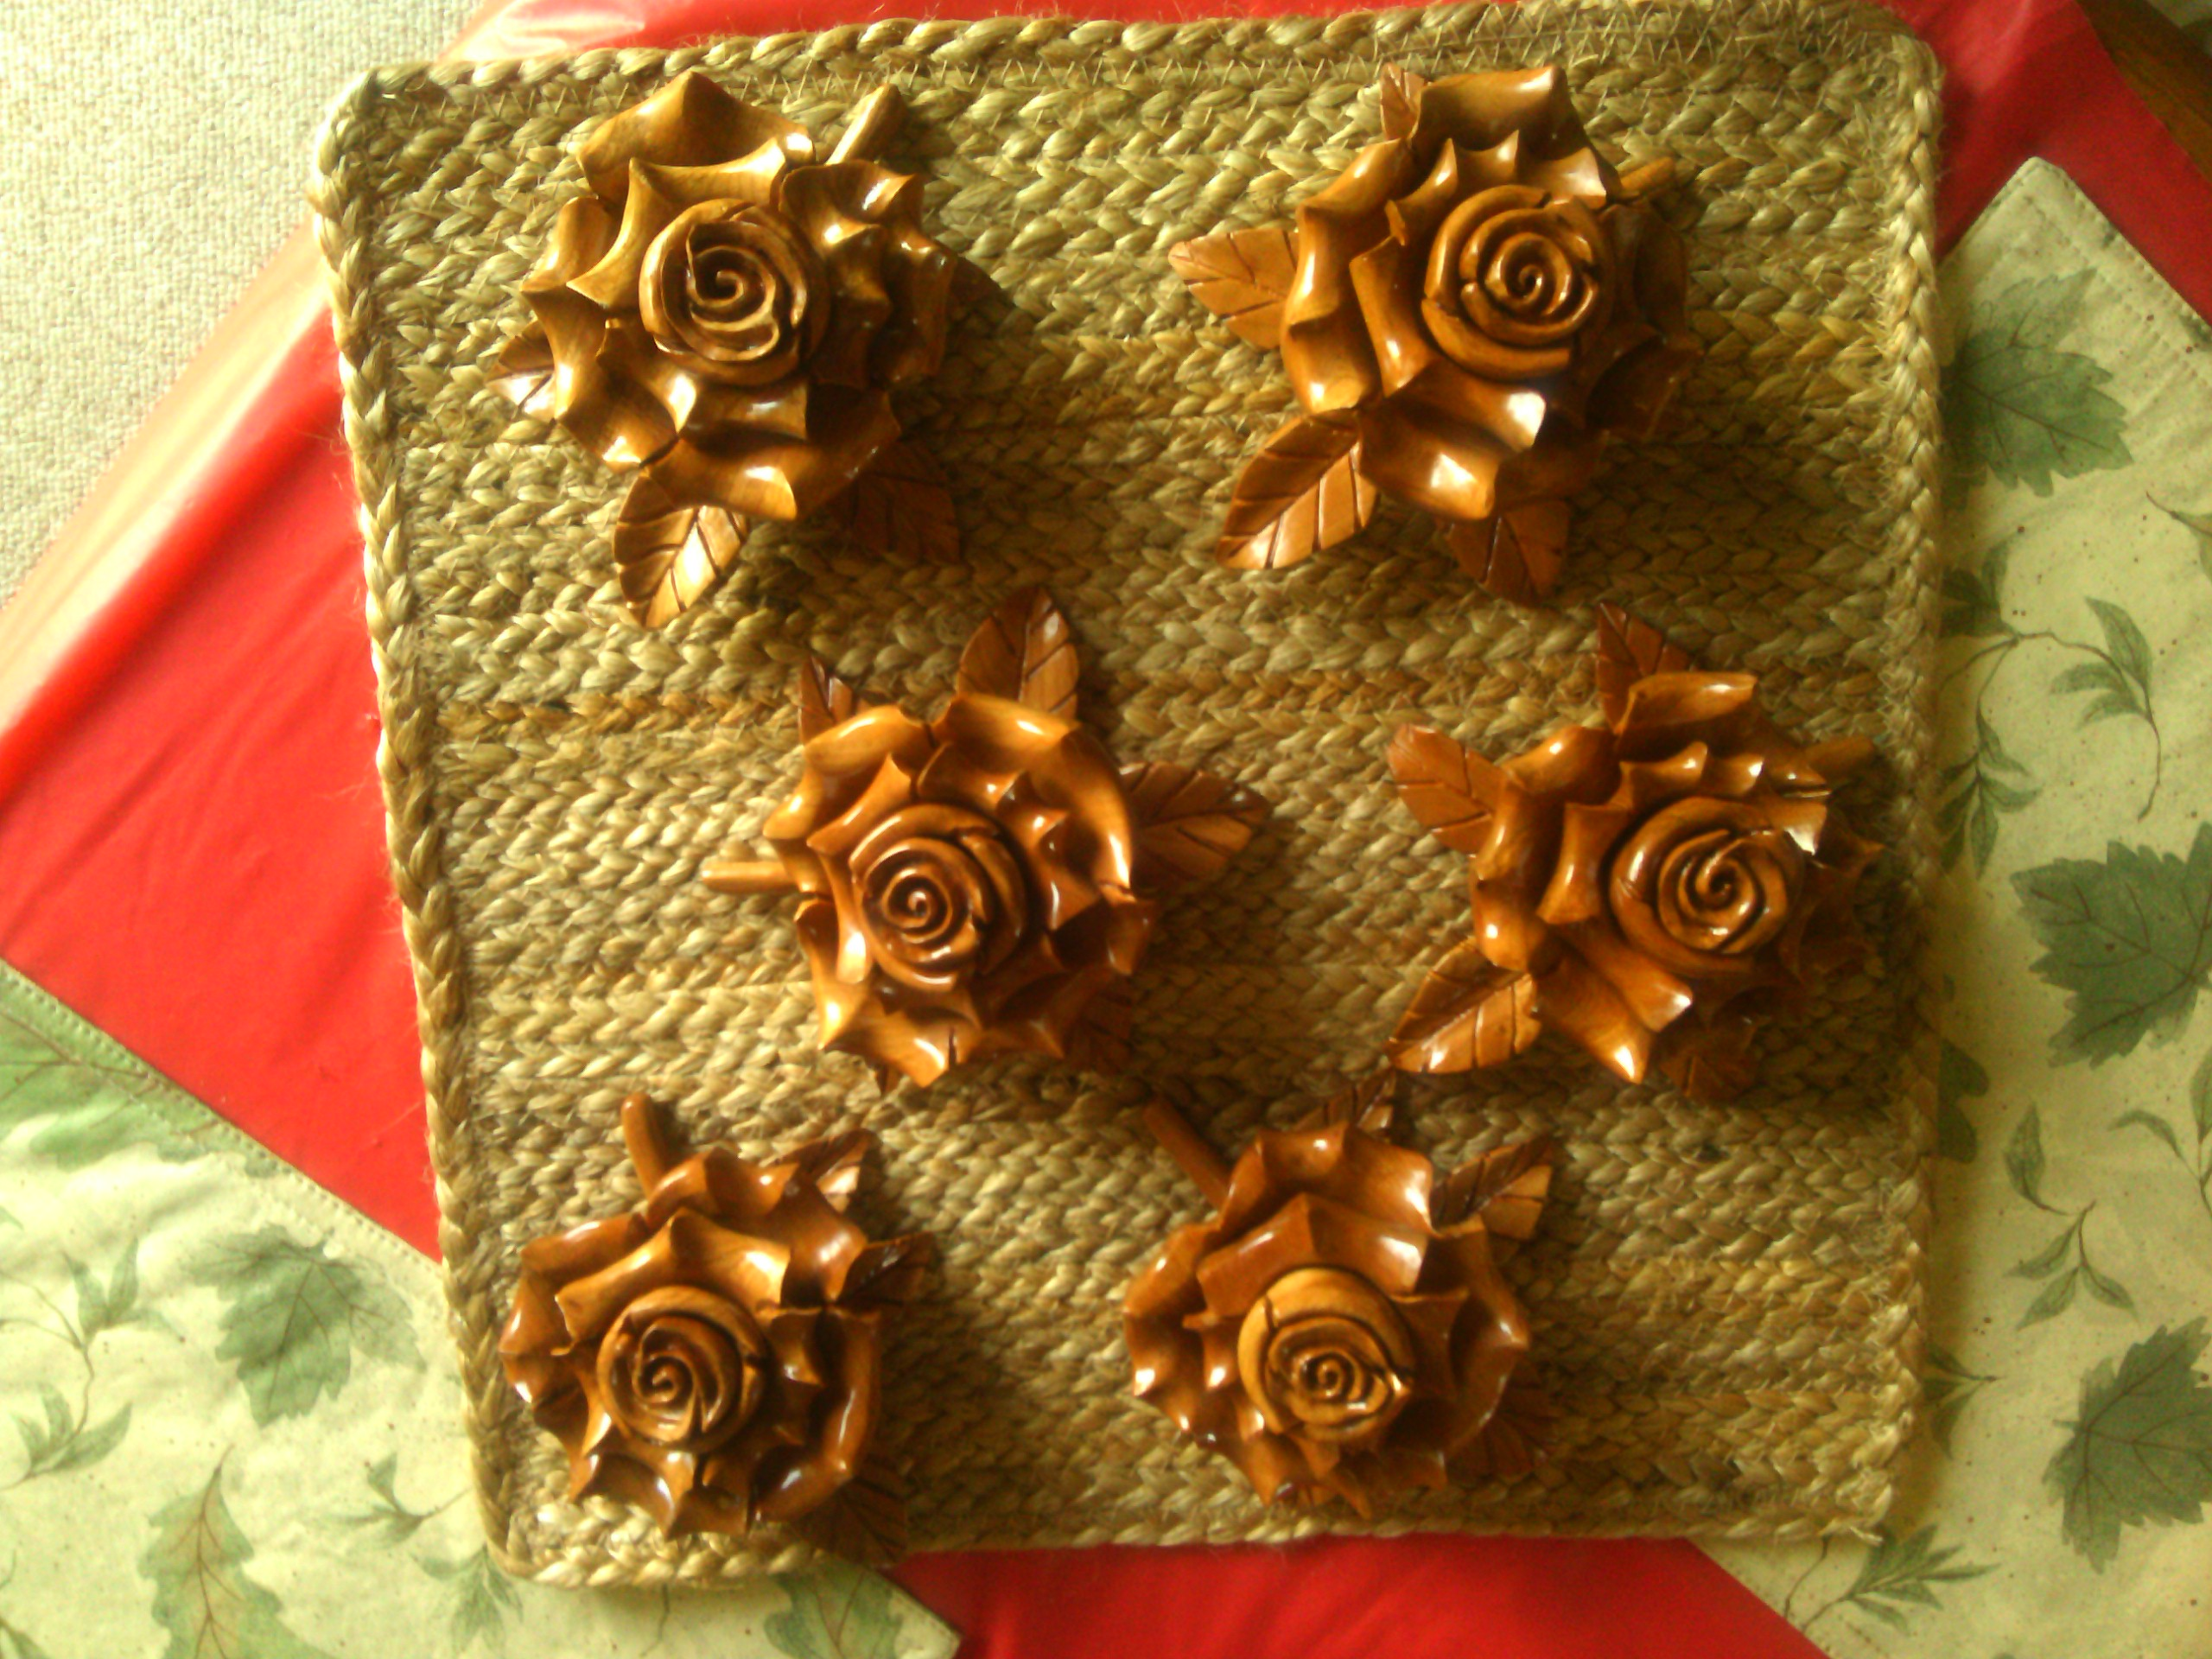 Hand Carved Roses from Logan County Court House Remnants